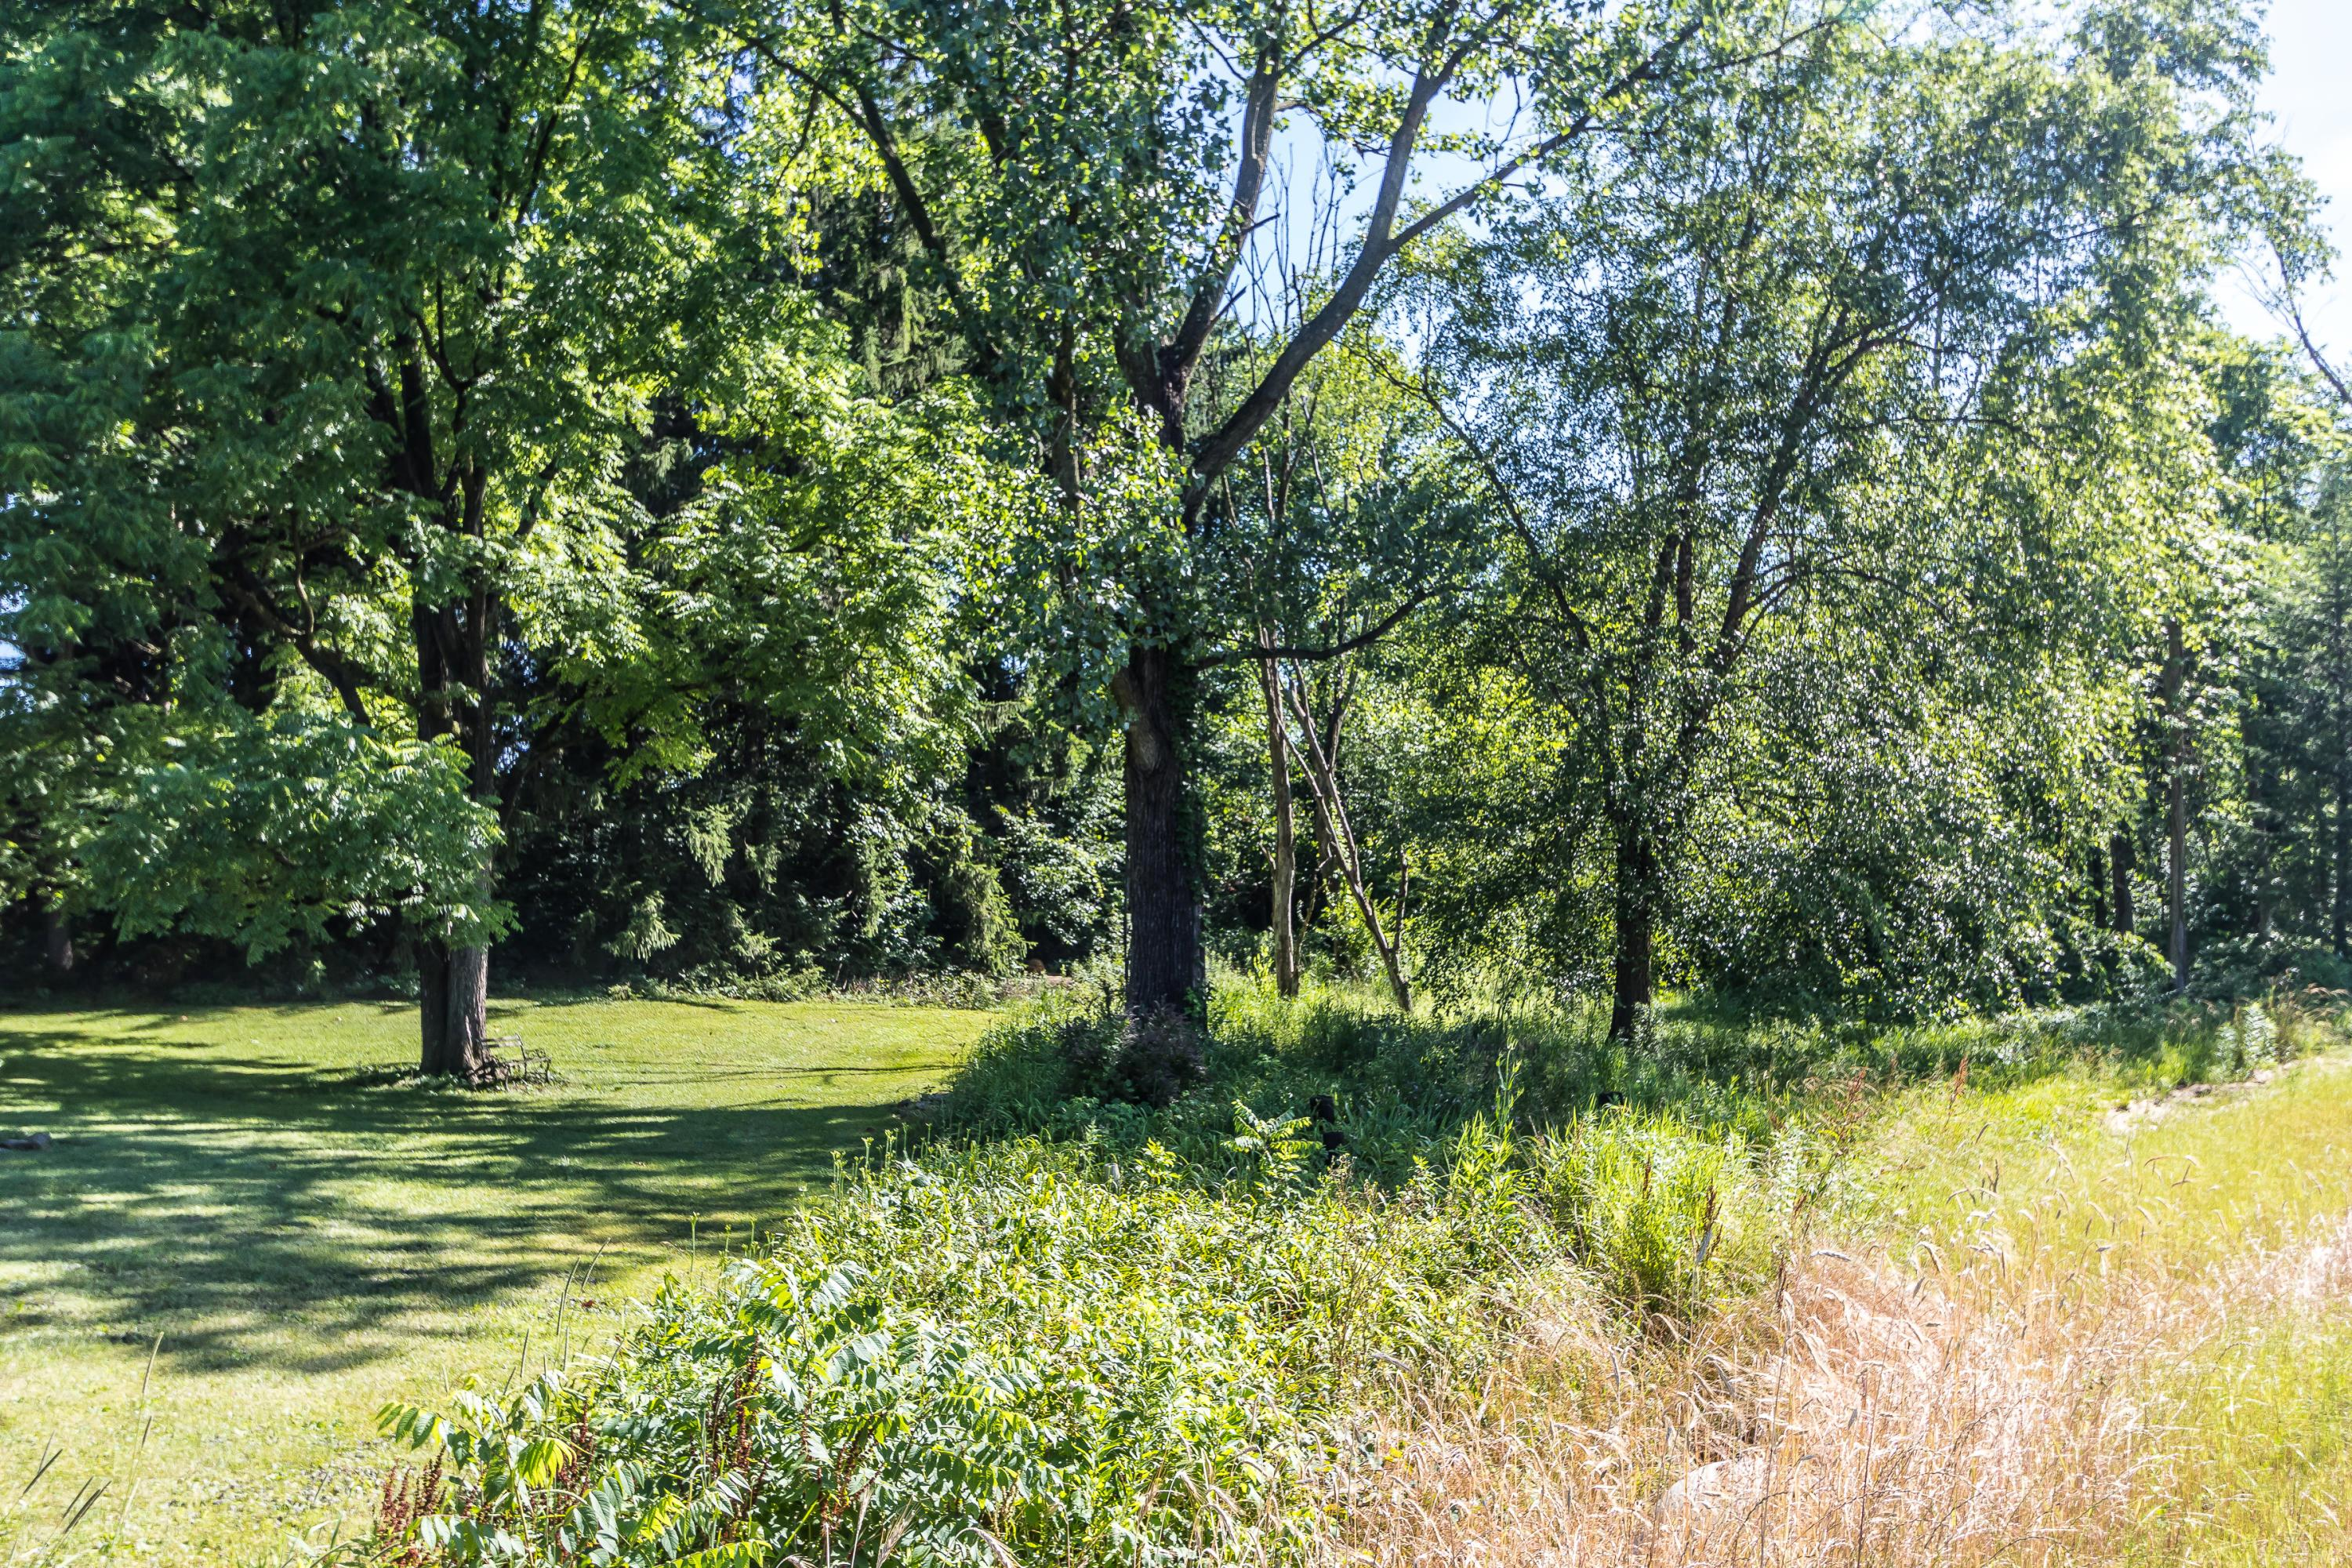 0 US Highway 23, Lewis Center, Ohio 43035, ,Land/farm,For Sale,US Highway 23,215004042